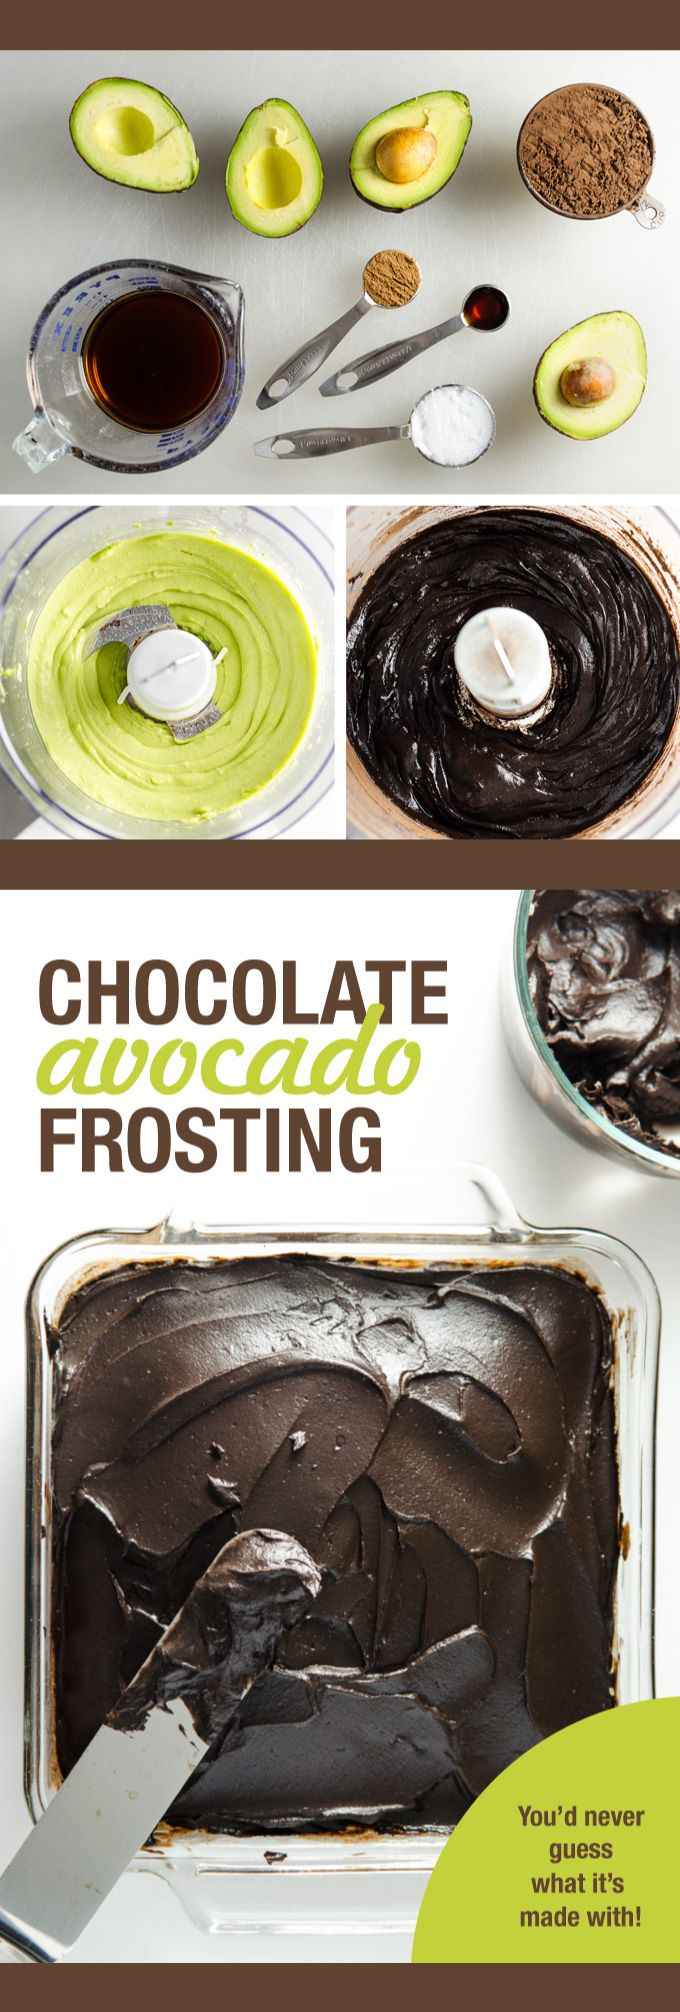 Dark Chocolate Avocado Frosting - Avocados Dark Cocoa Powder Maple Syrup Coconut Oil Vanilla Cinnamon